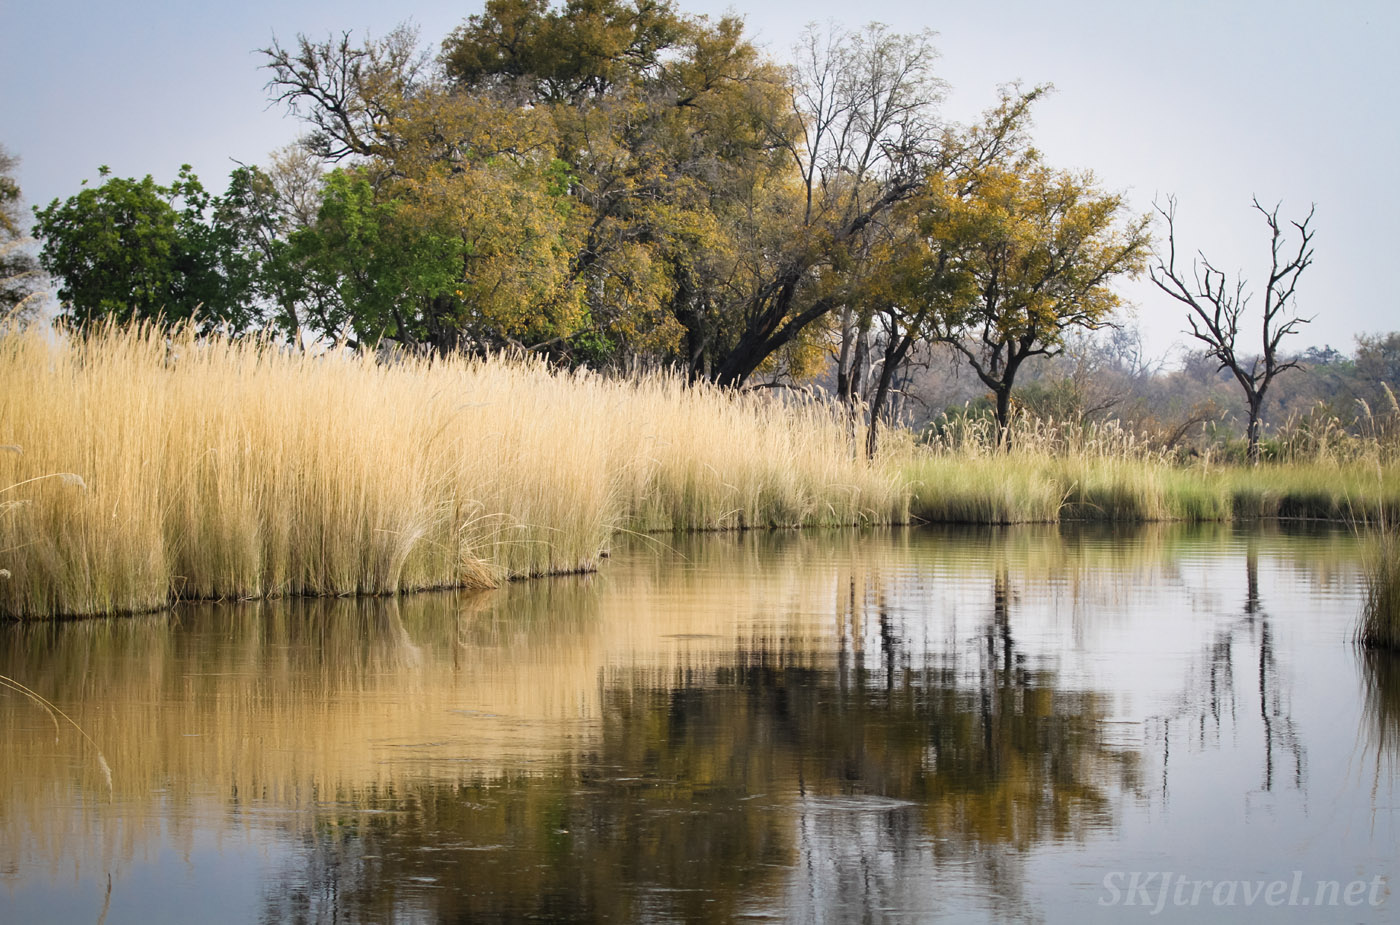 Marshland water channels, grasses reflecting on the water, in the Okavango Delta, Moremi Game Reserve, Botswana.